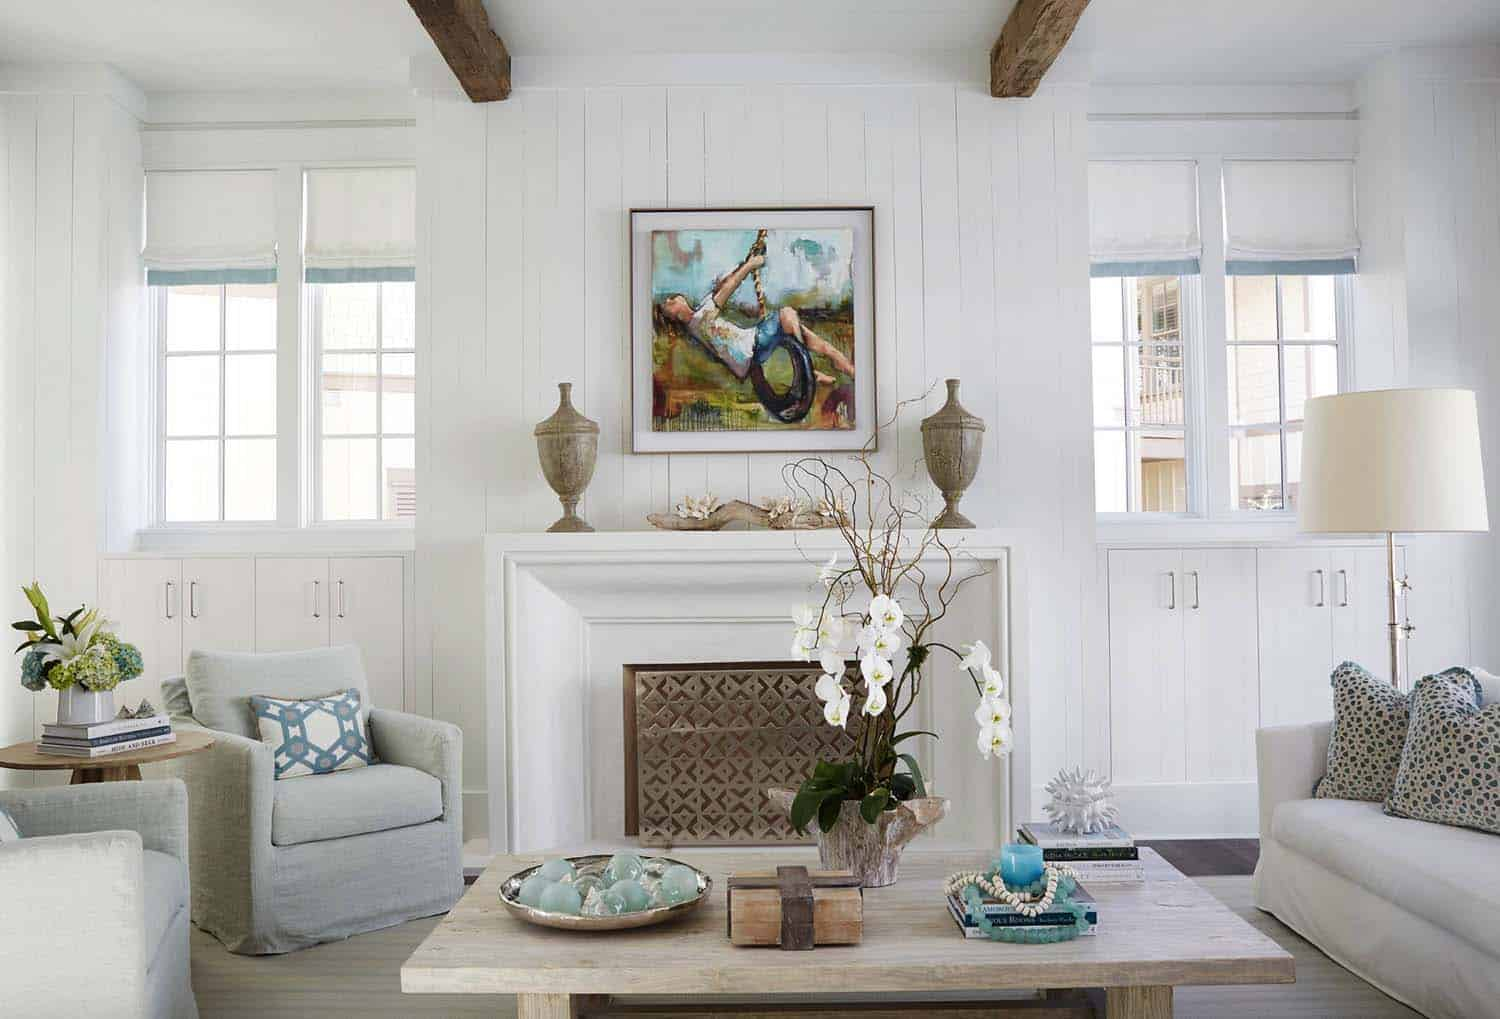 Inviting Beach House-TS Adams Studio-11-1 Kindesign